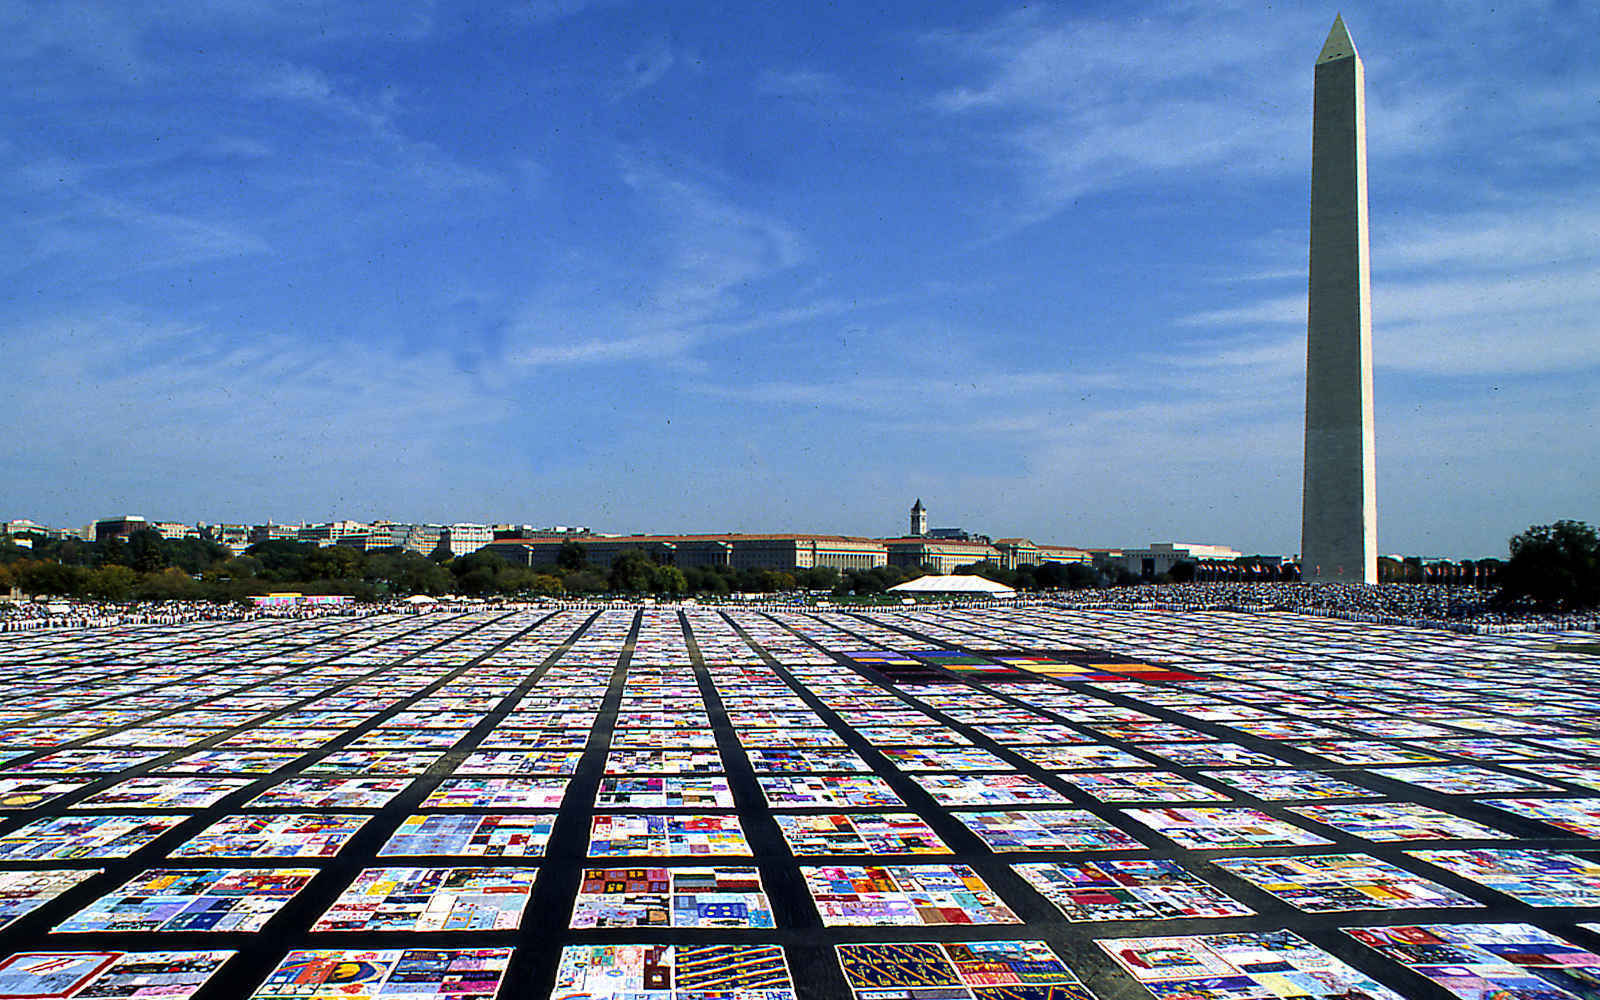 Support the AIDS Memorial Quilt image